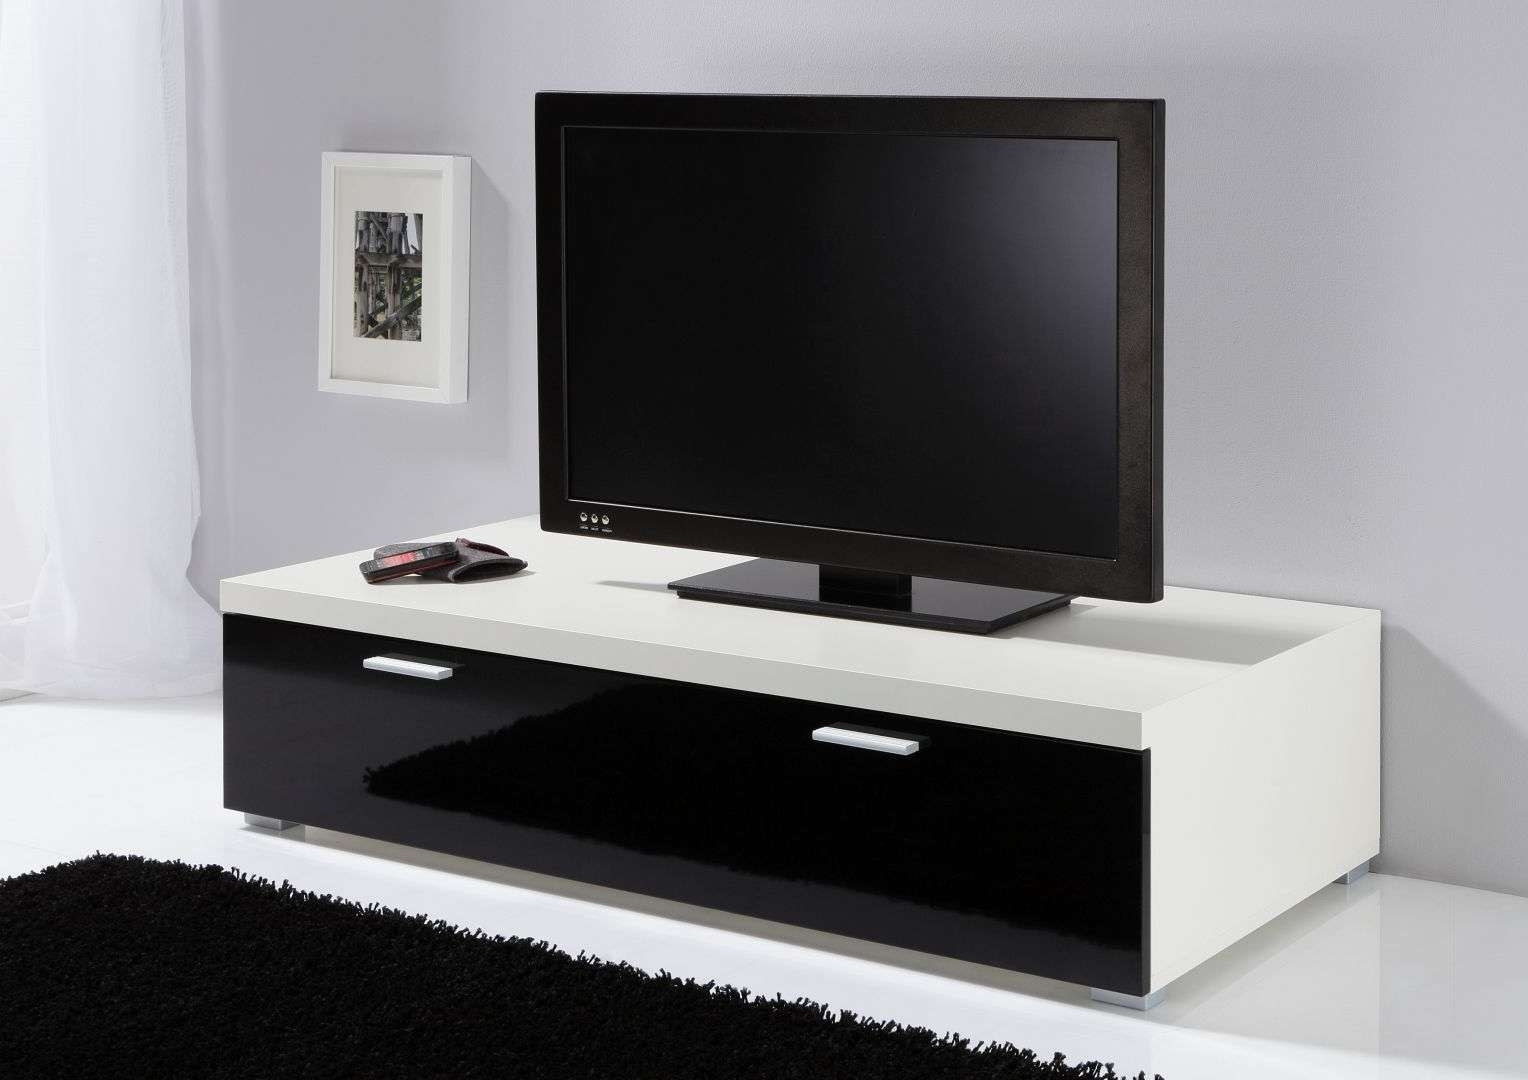 Modanuvo Low Tv Unit, Tv Cabinet, Tv Stand Off White & Black High Pertaining To Tv Cabinets Black High Gloss (View 11 of 20)